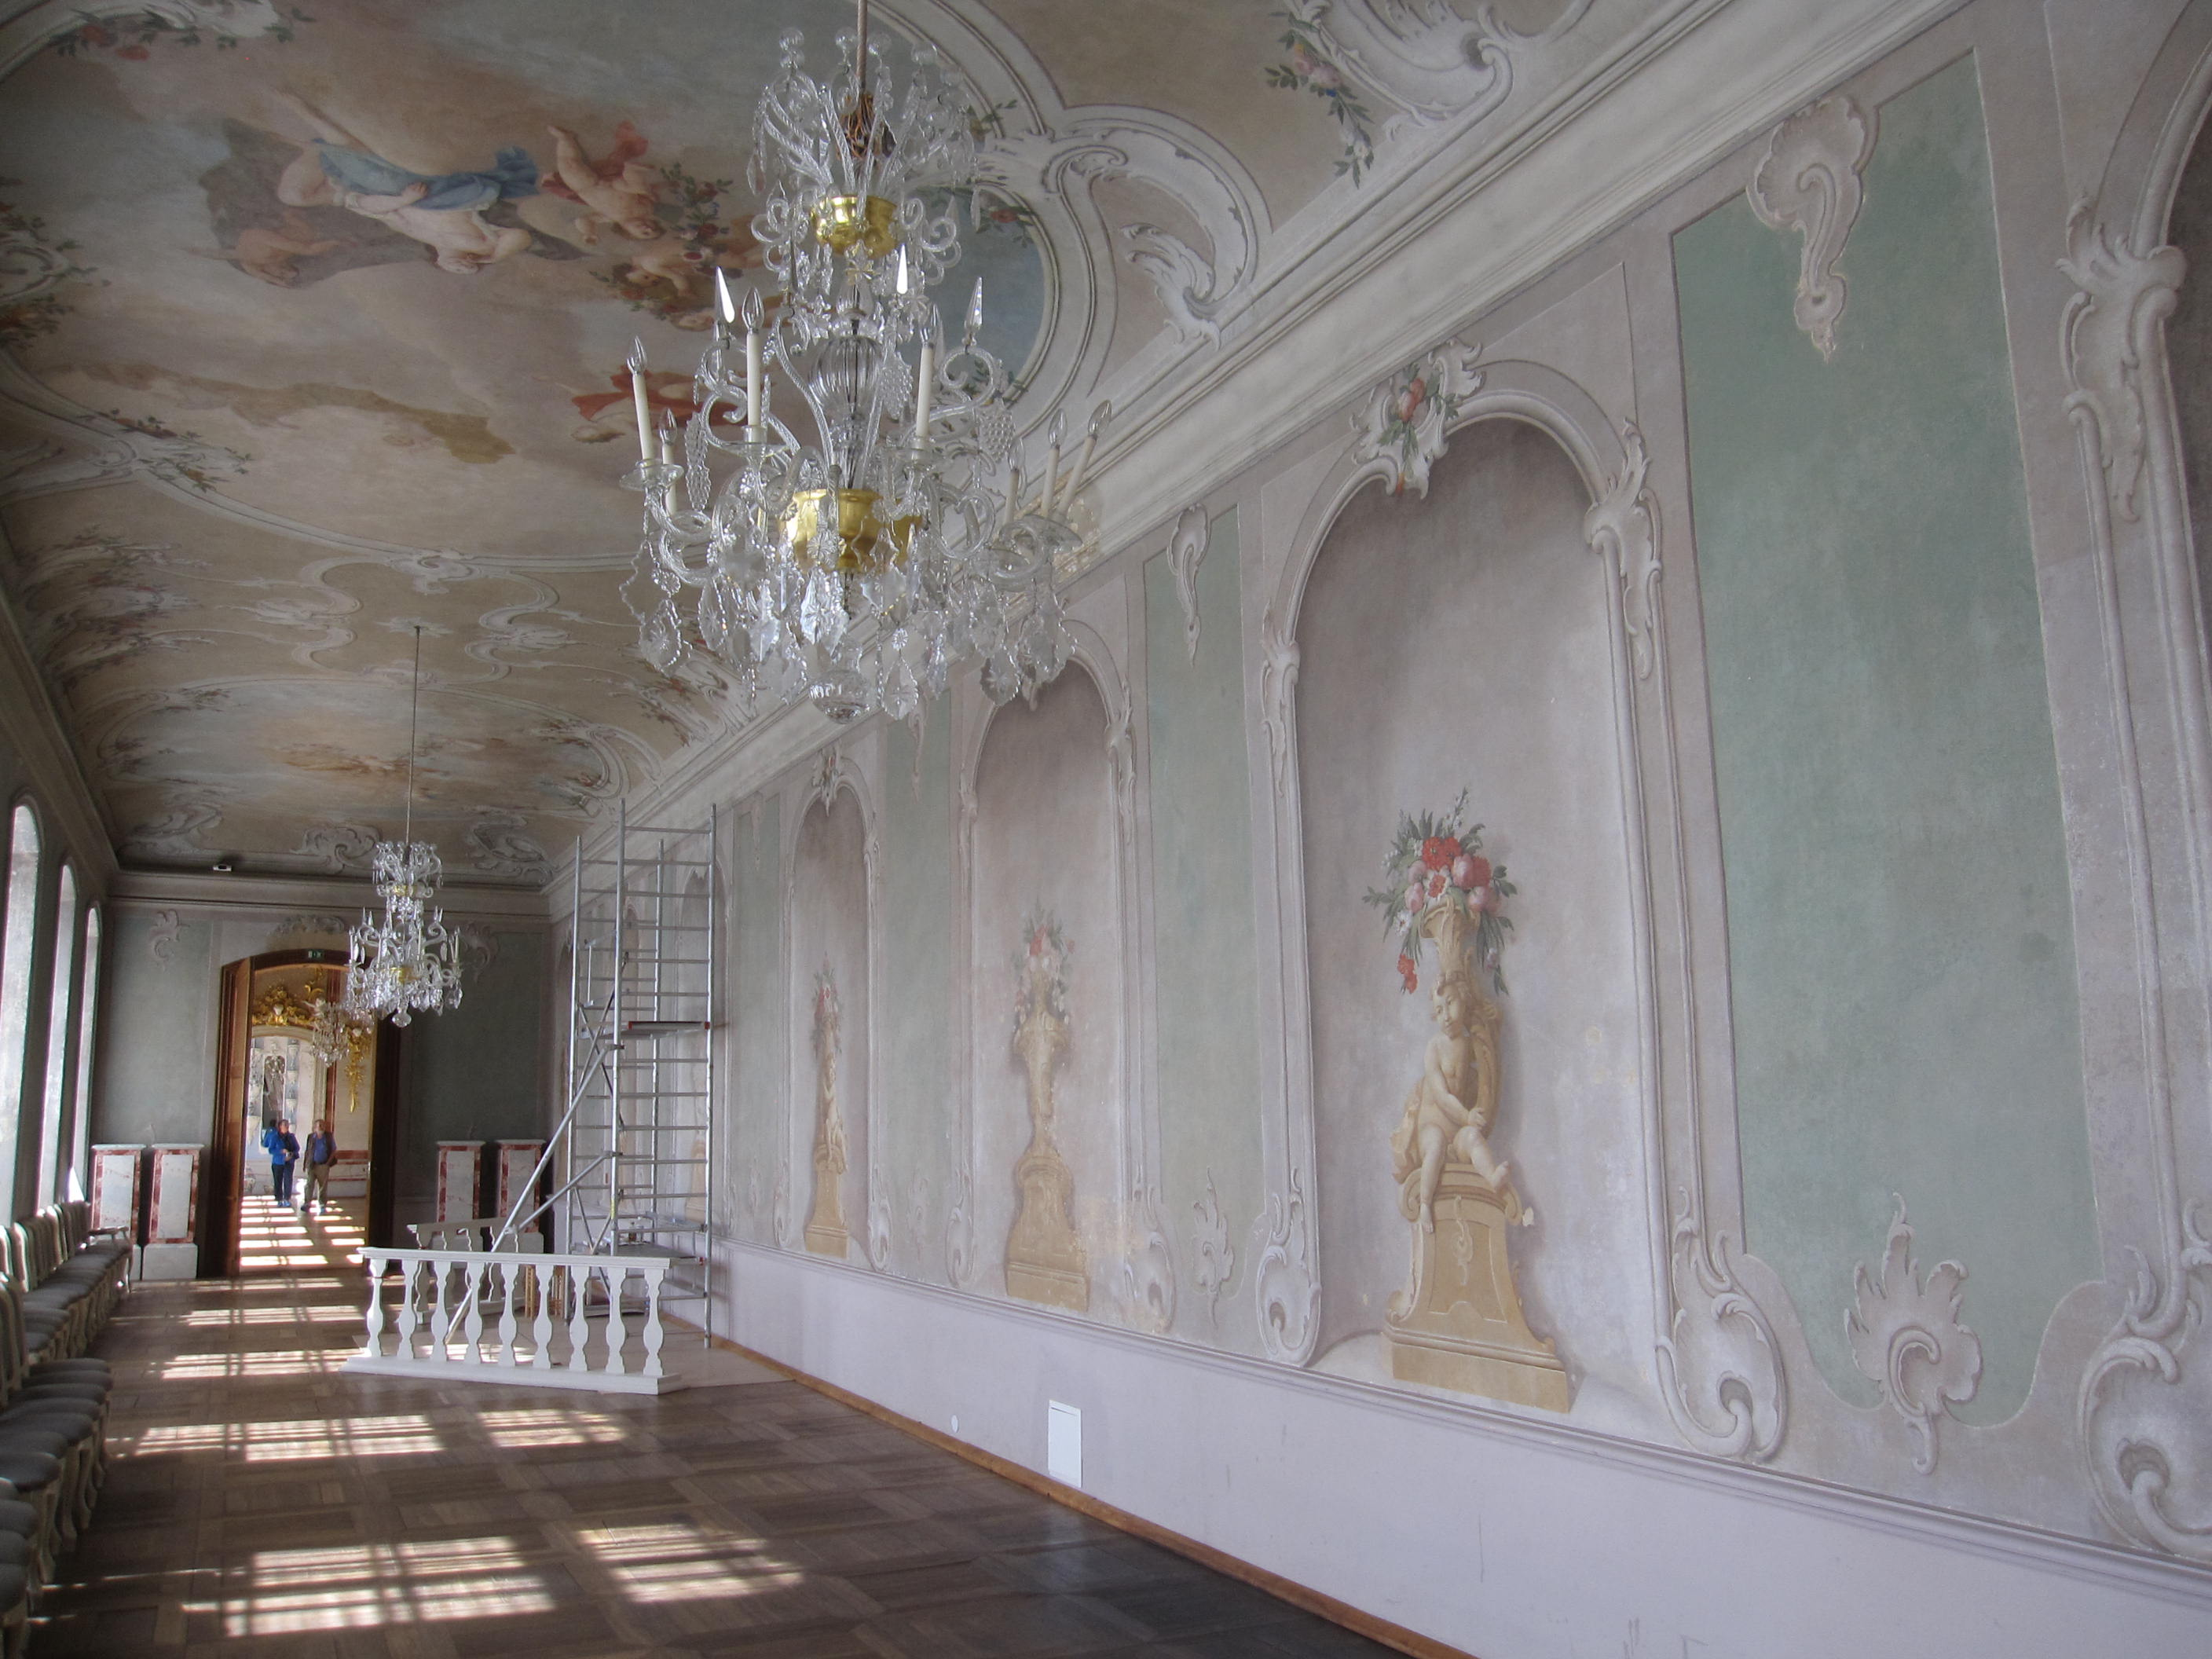 File:Rundale palace interior, decorated walls.jpg - Wikimedia Commons